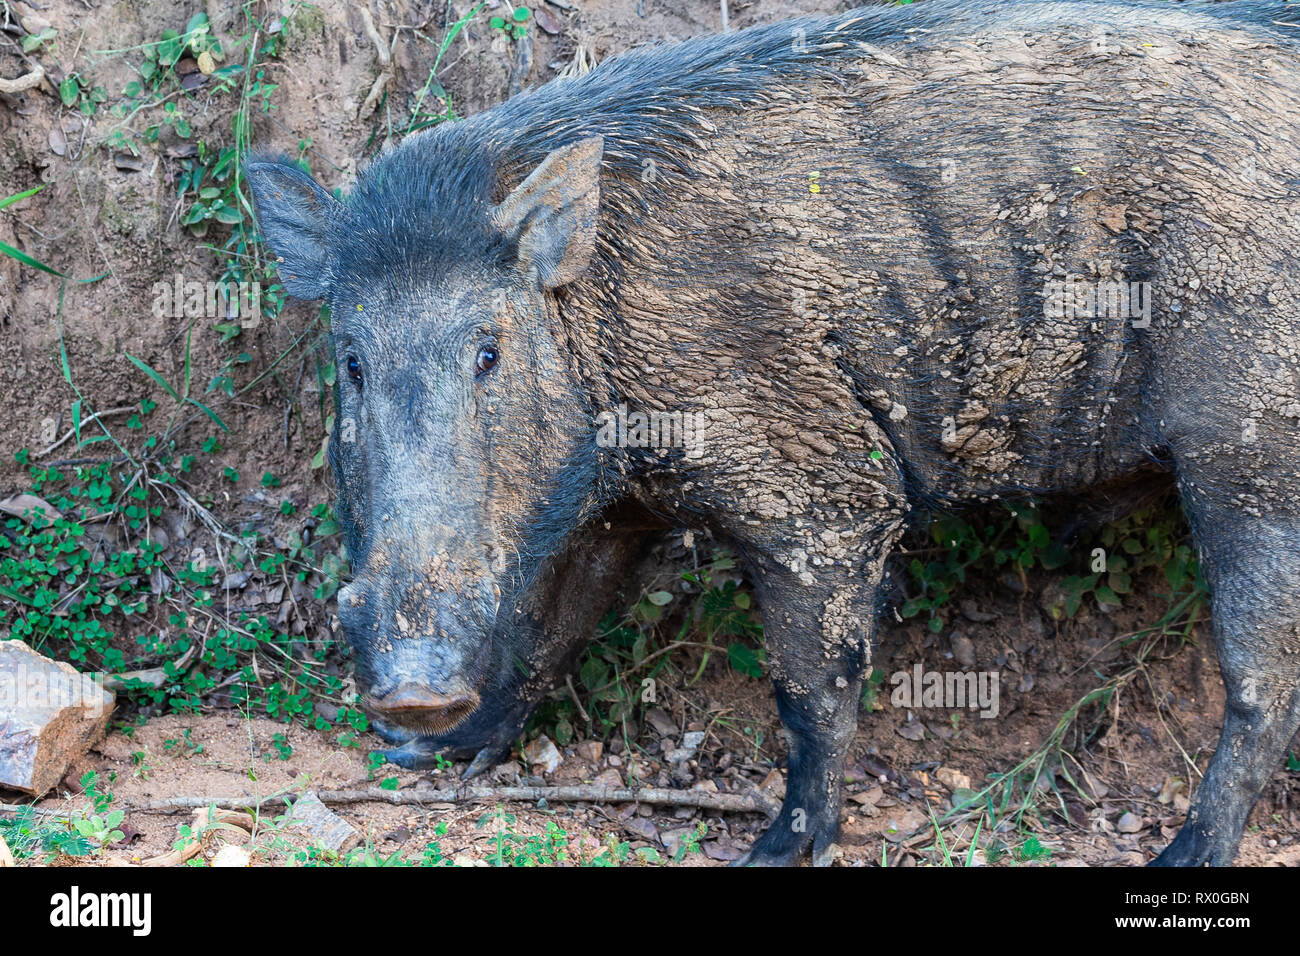 Wild boar. Yala National Park. Sri Lanka. Stock Photo